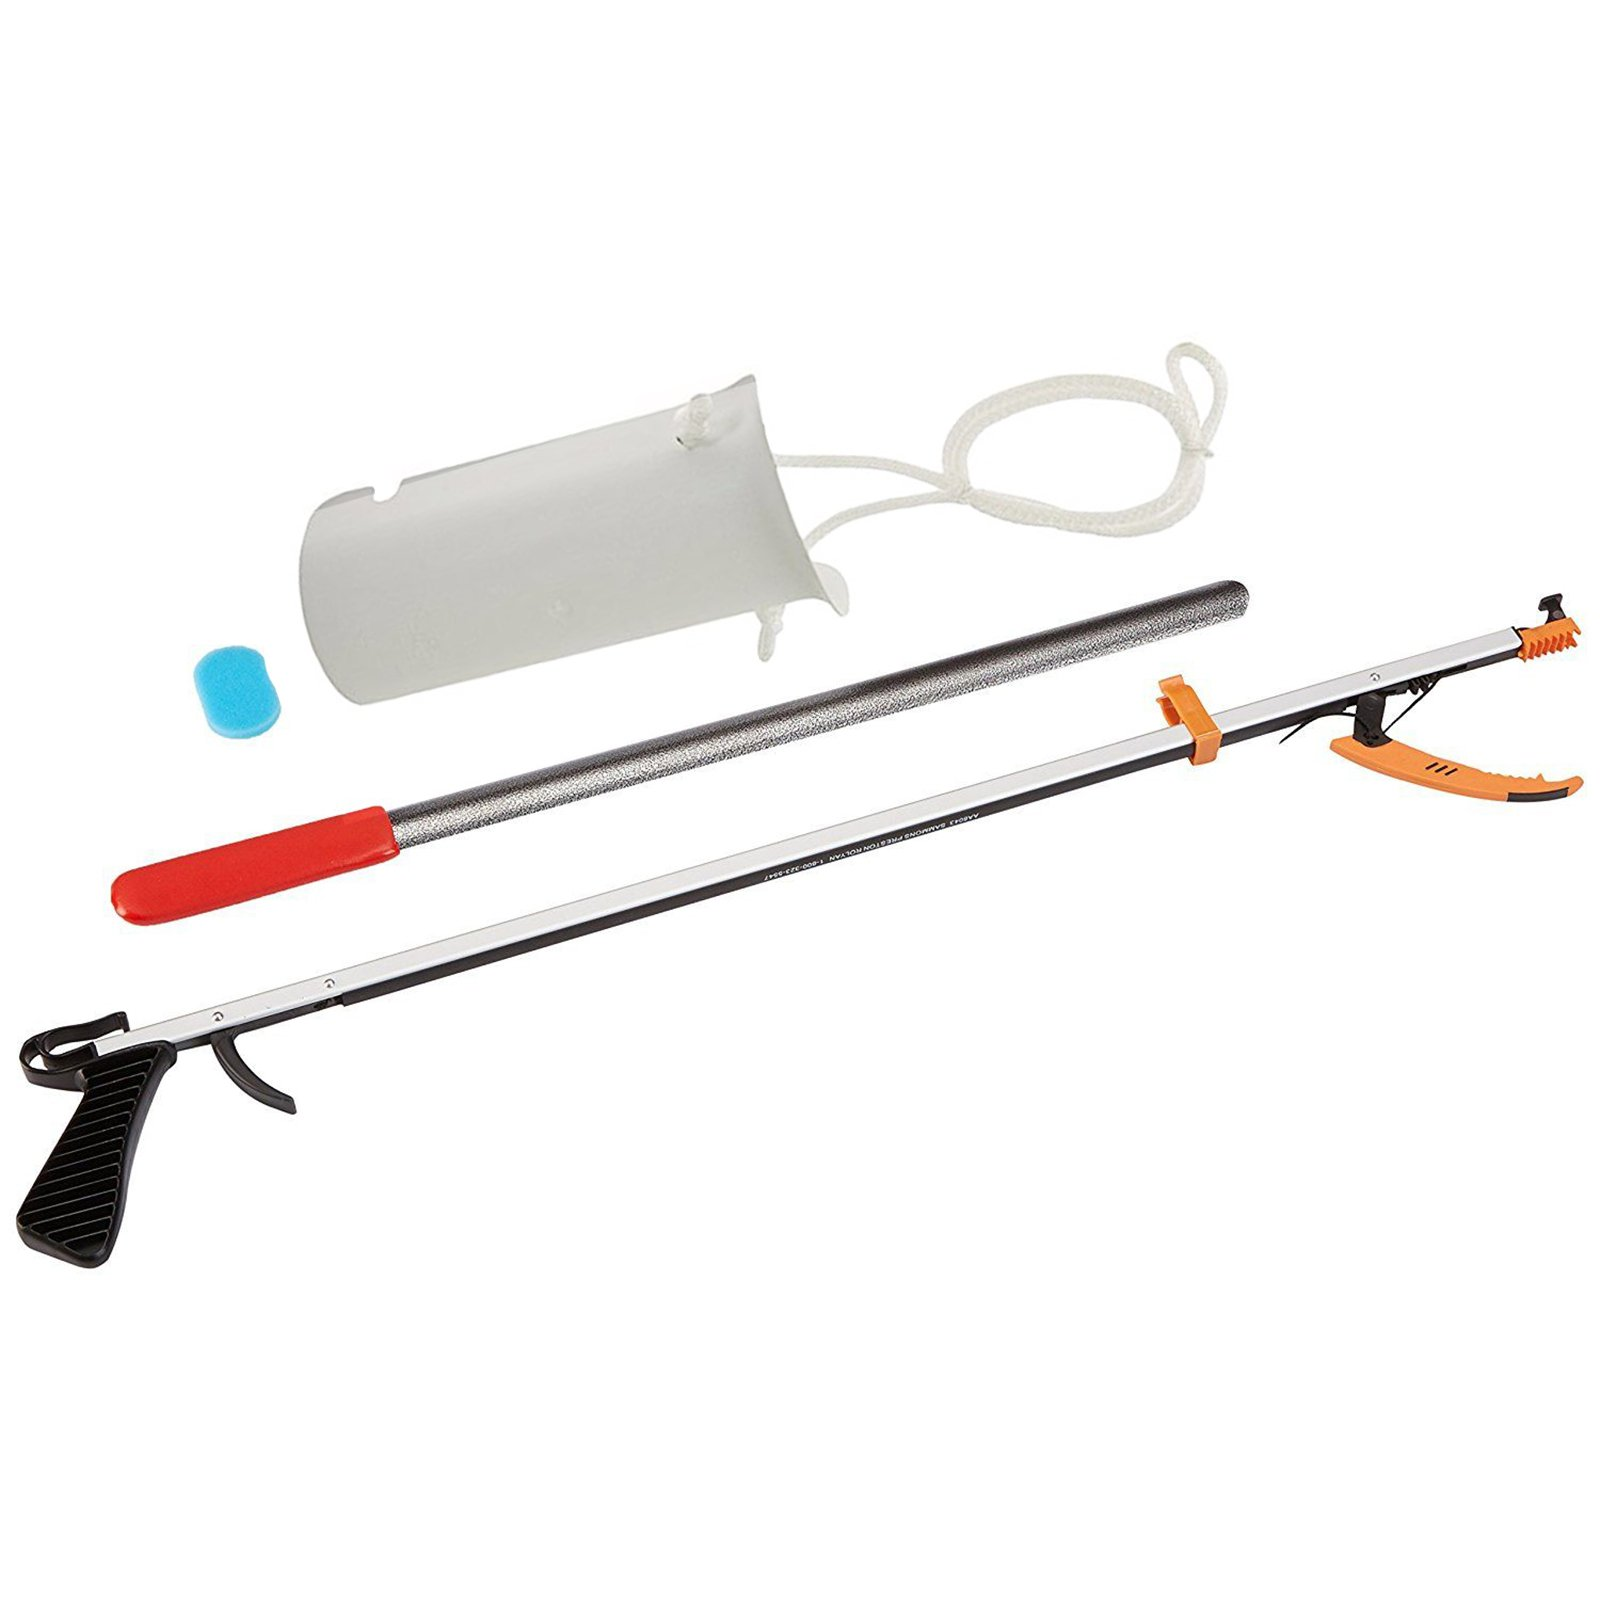 Sammons Preston Basic Assistive Device Kit II, Reaching Tools for Limited Range of Motion and Mobility, Long Handle Extension Tools, Shoehorn Dressing Aid, Sock Aid and 26'' Reacher by Sammons Preston